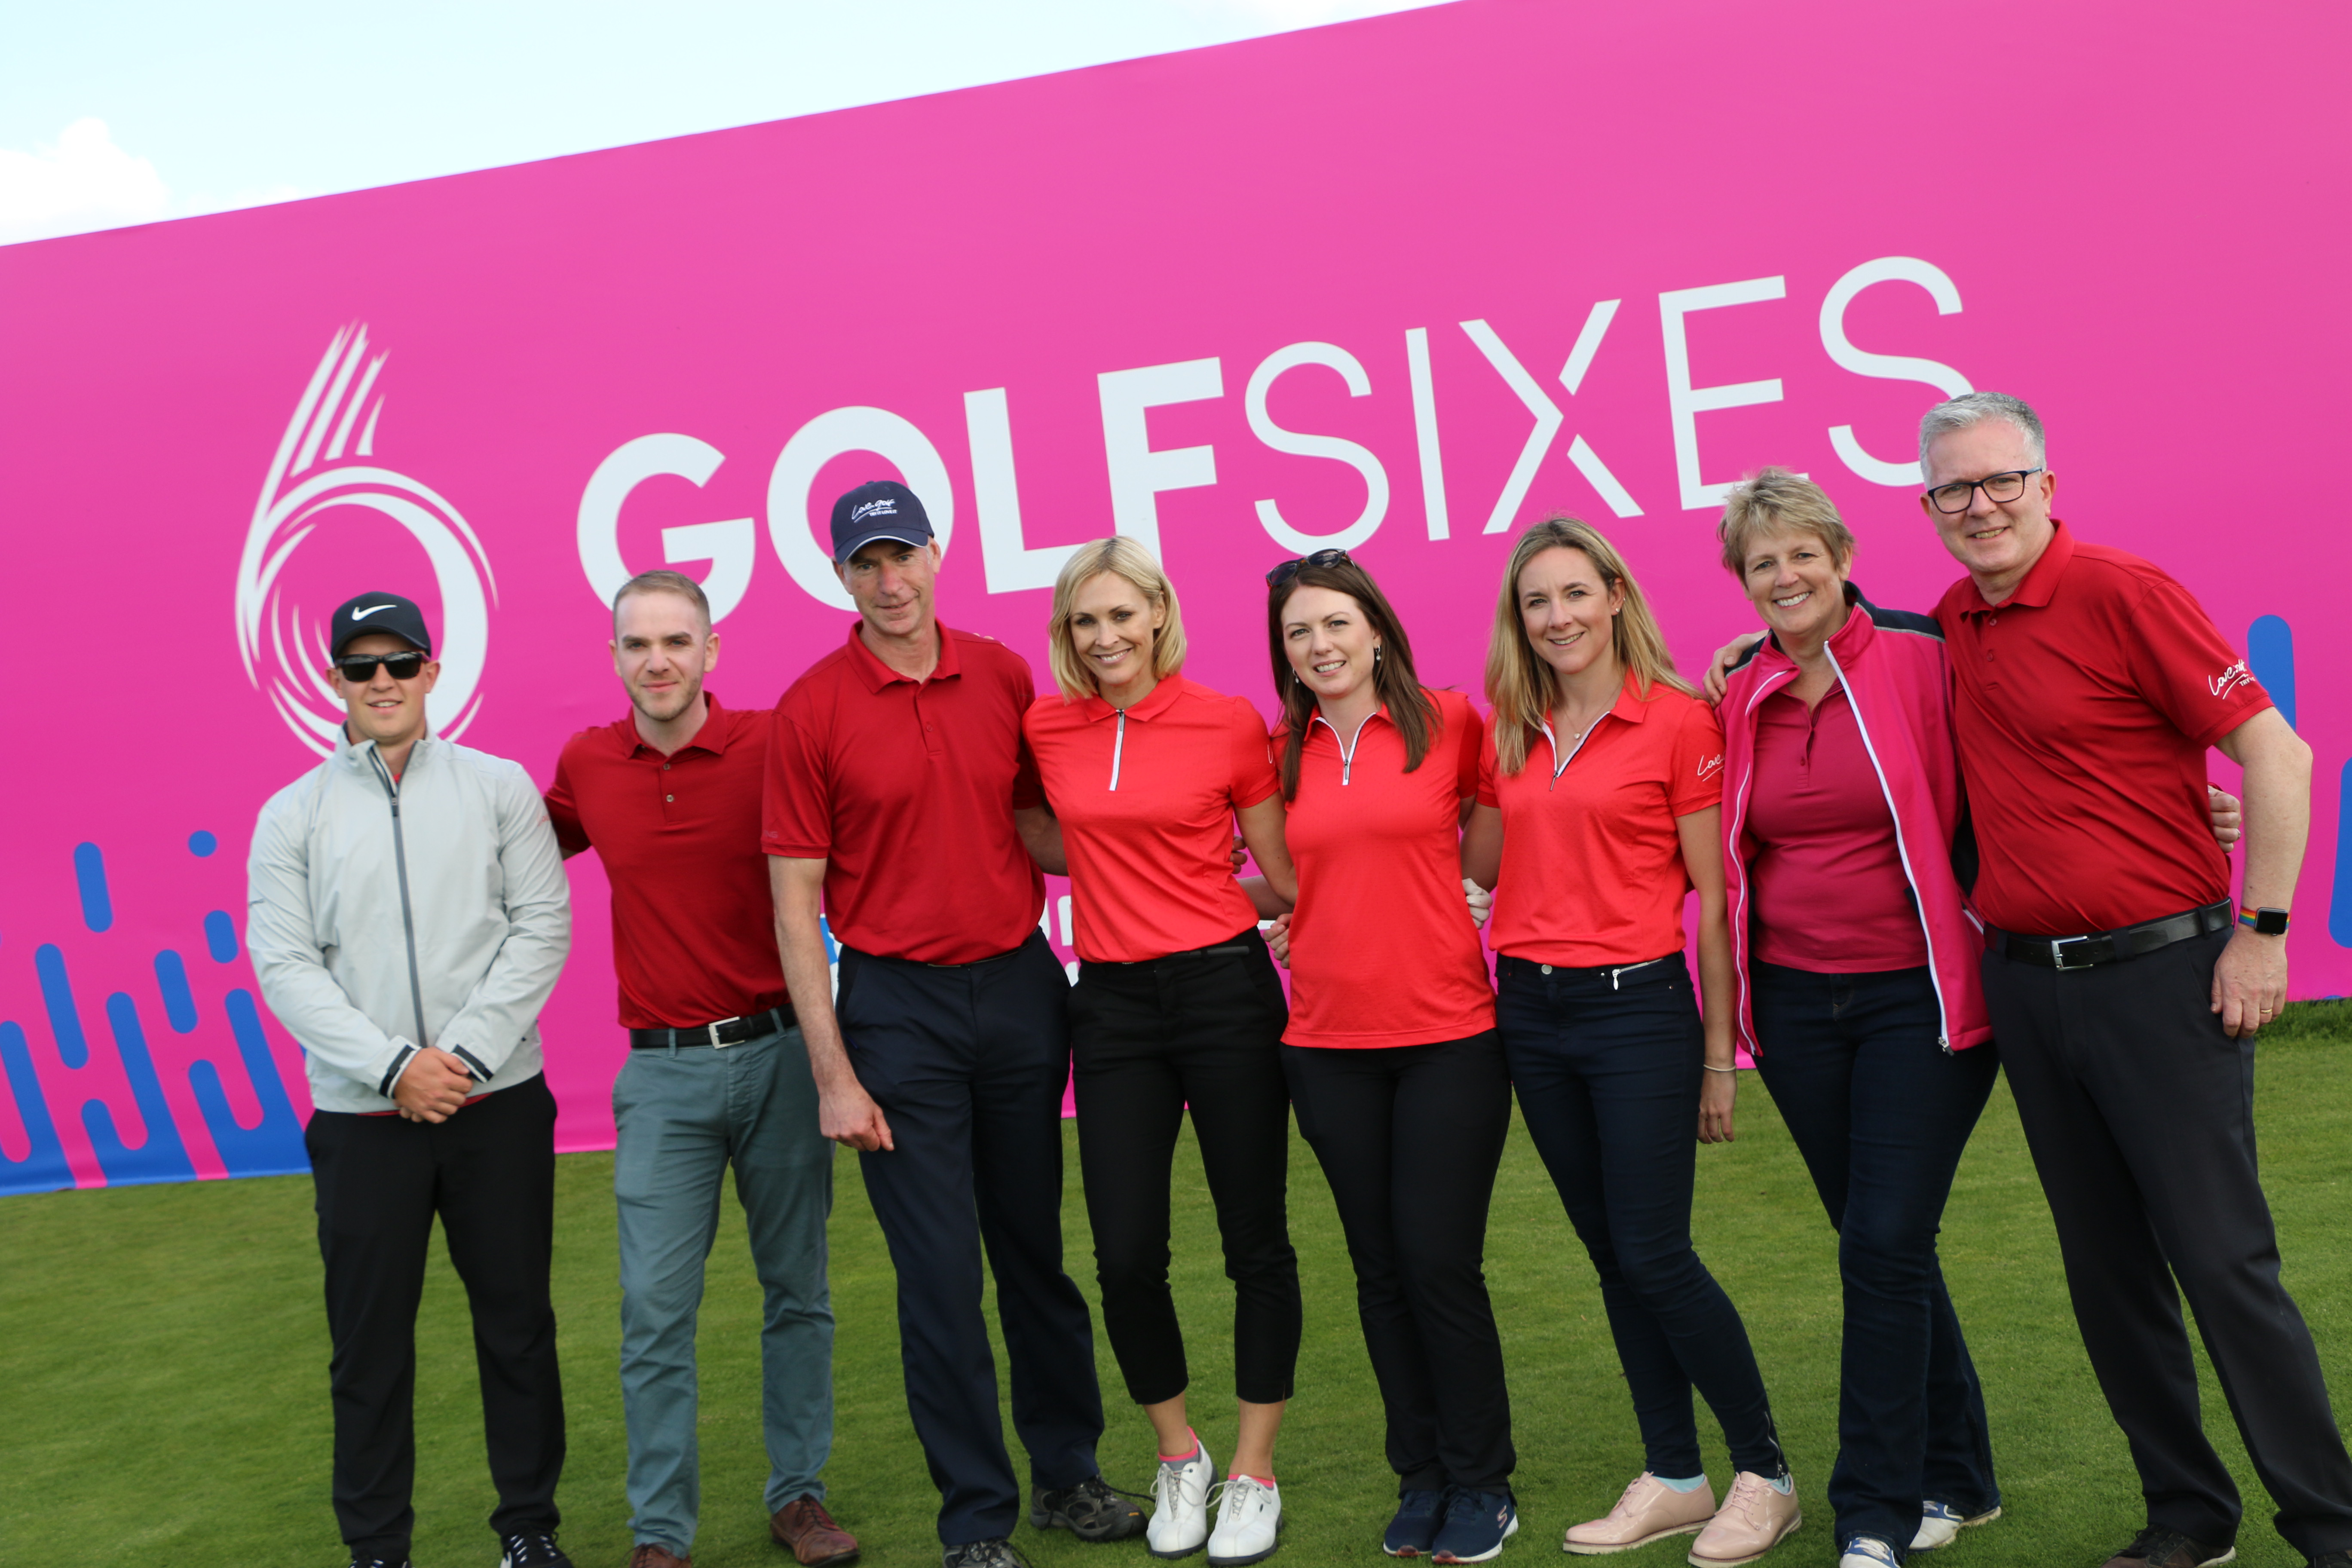 Jenni Falconer and the love.golf team